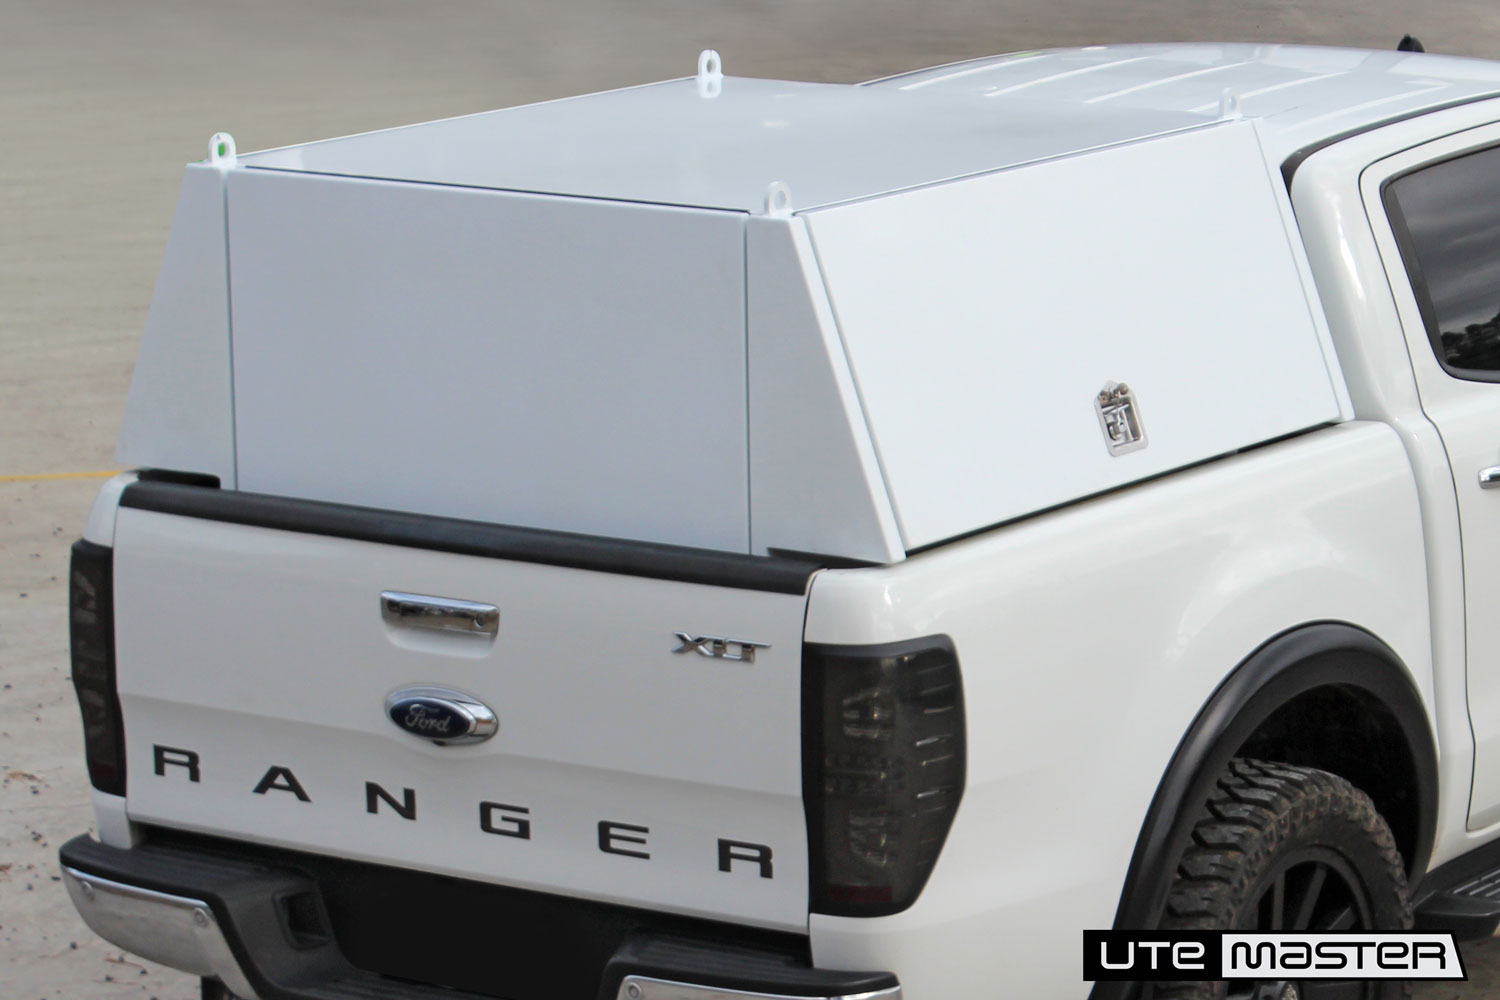 Lift Off Toolbox to suit Commercial Ute Removable Toolbox by Utemaster Lift off box body Ford Ranger